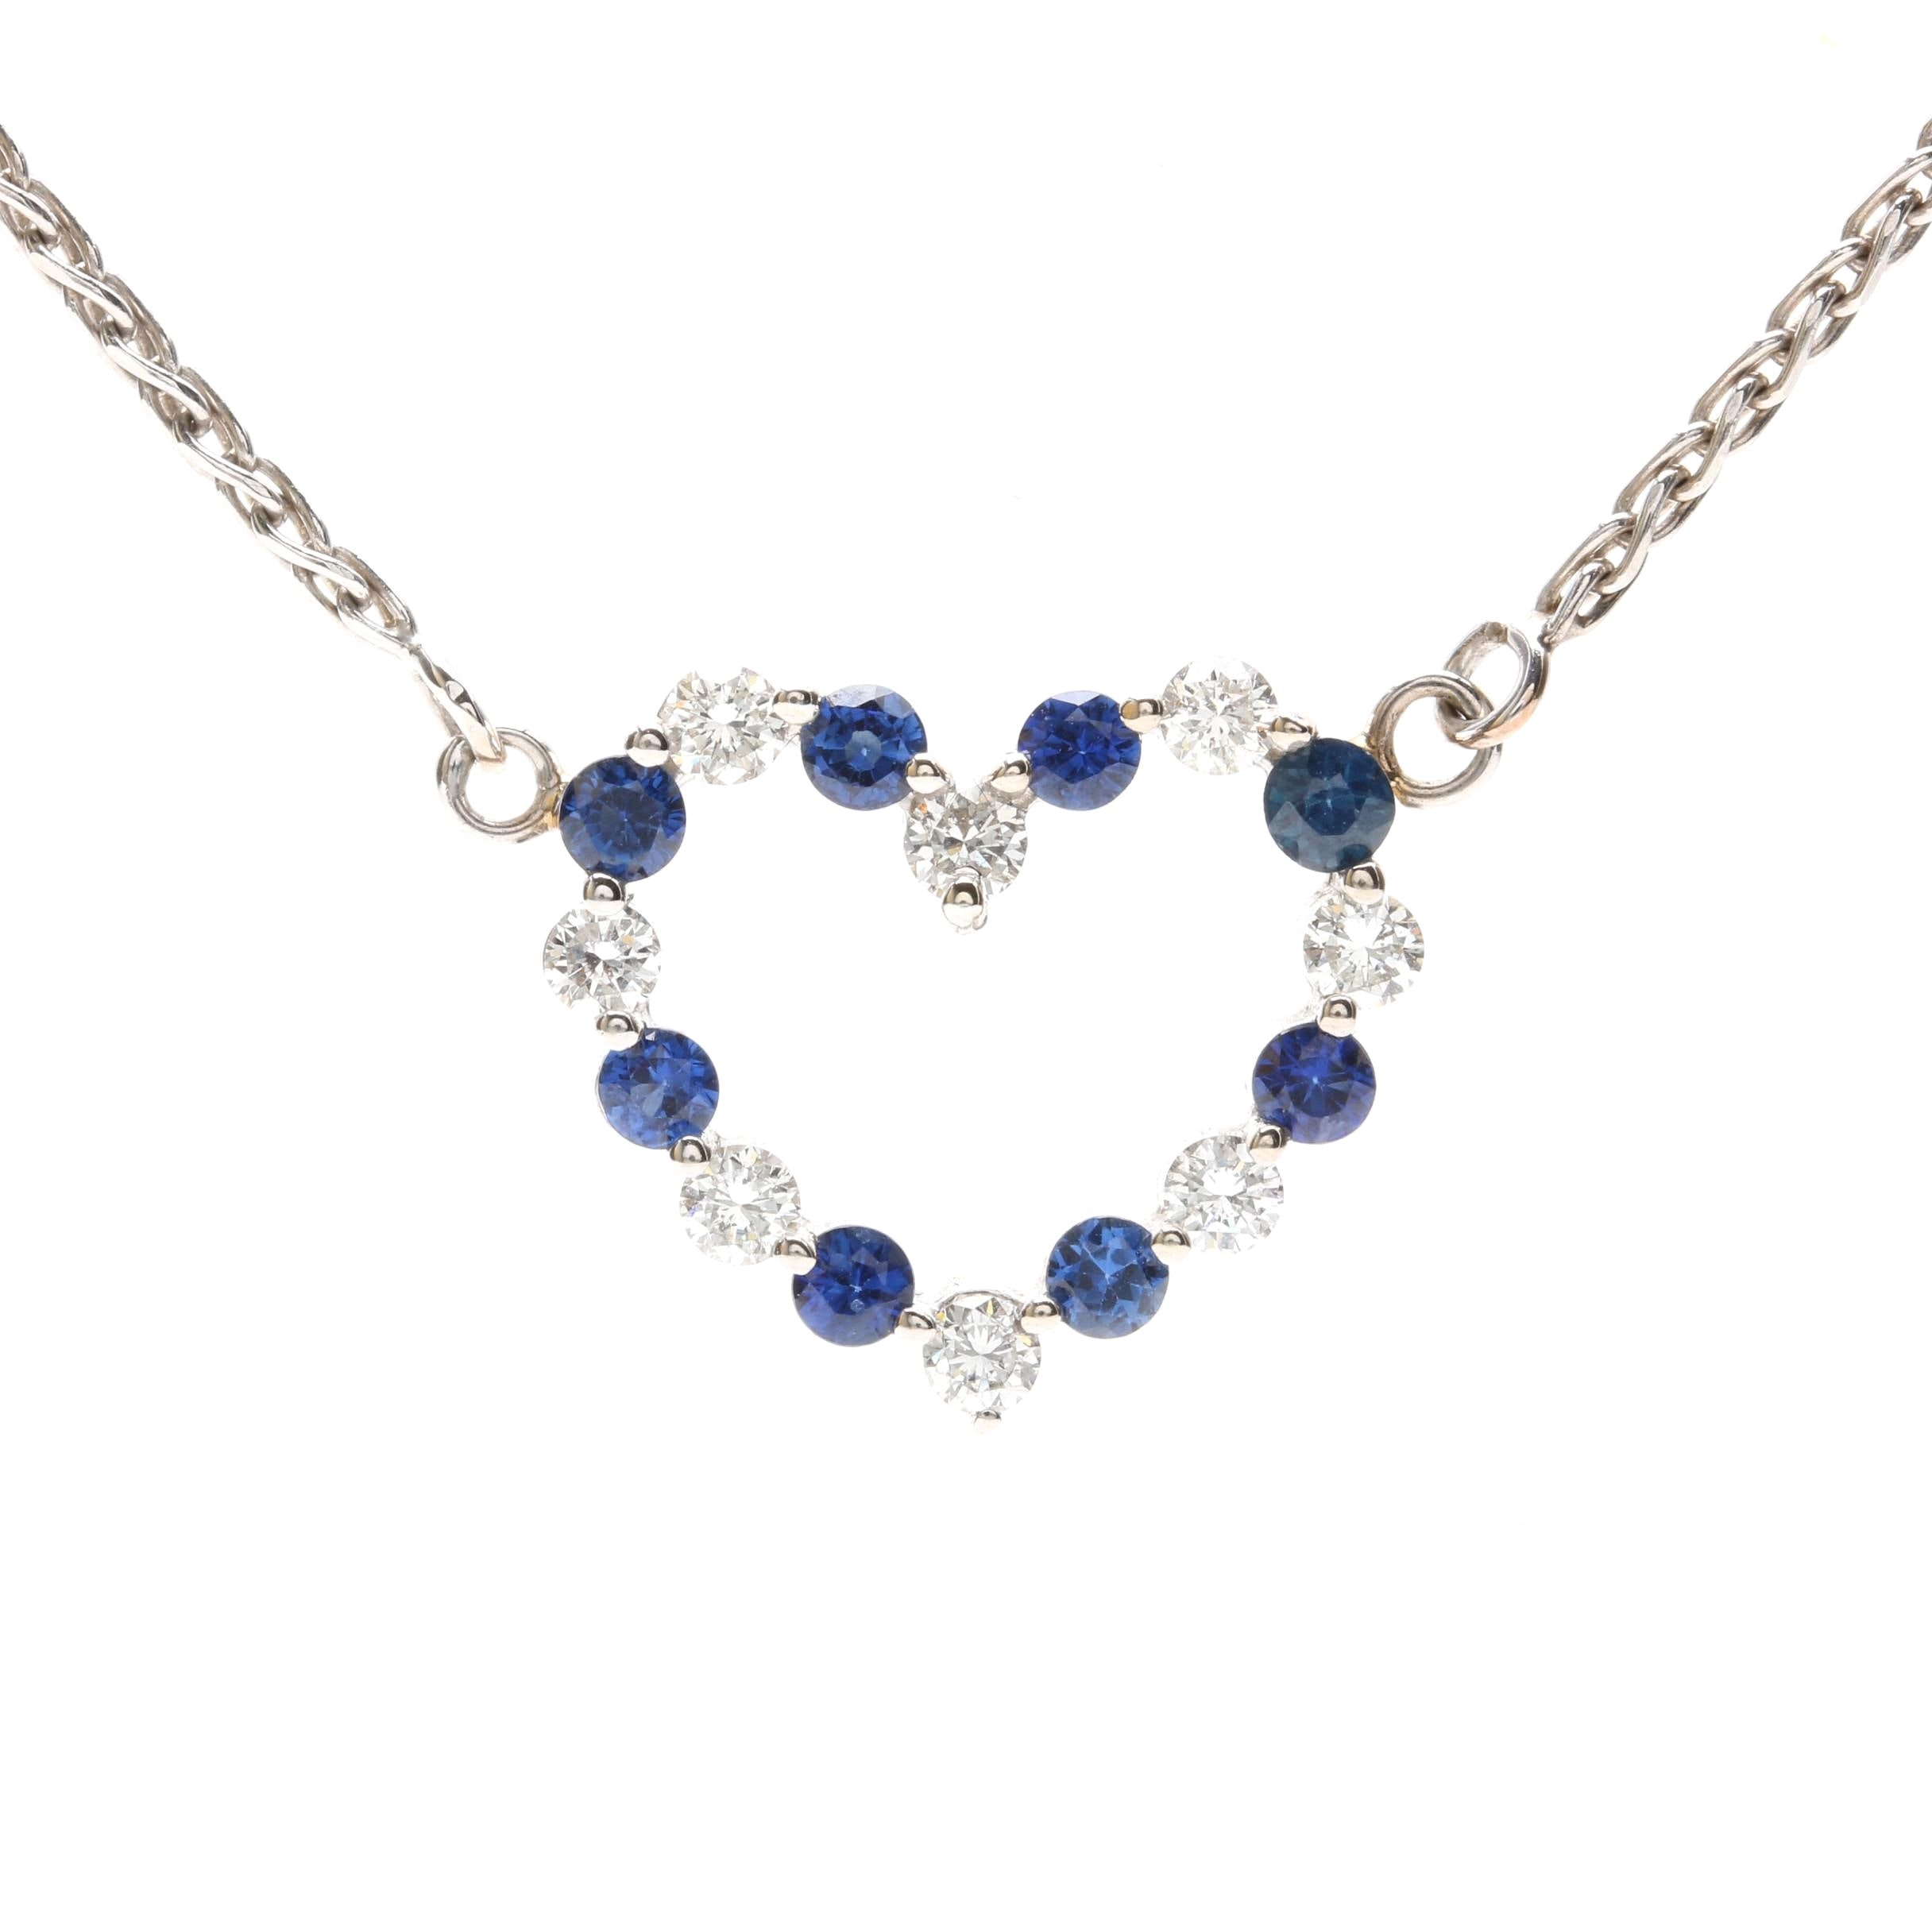 14K White Gold Diamond and Sapphire Heart Necklace